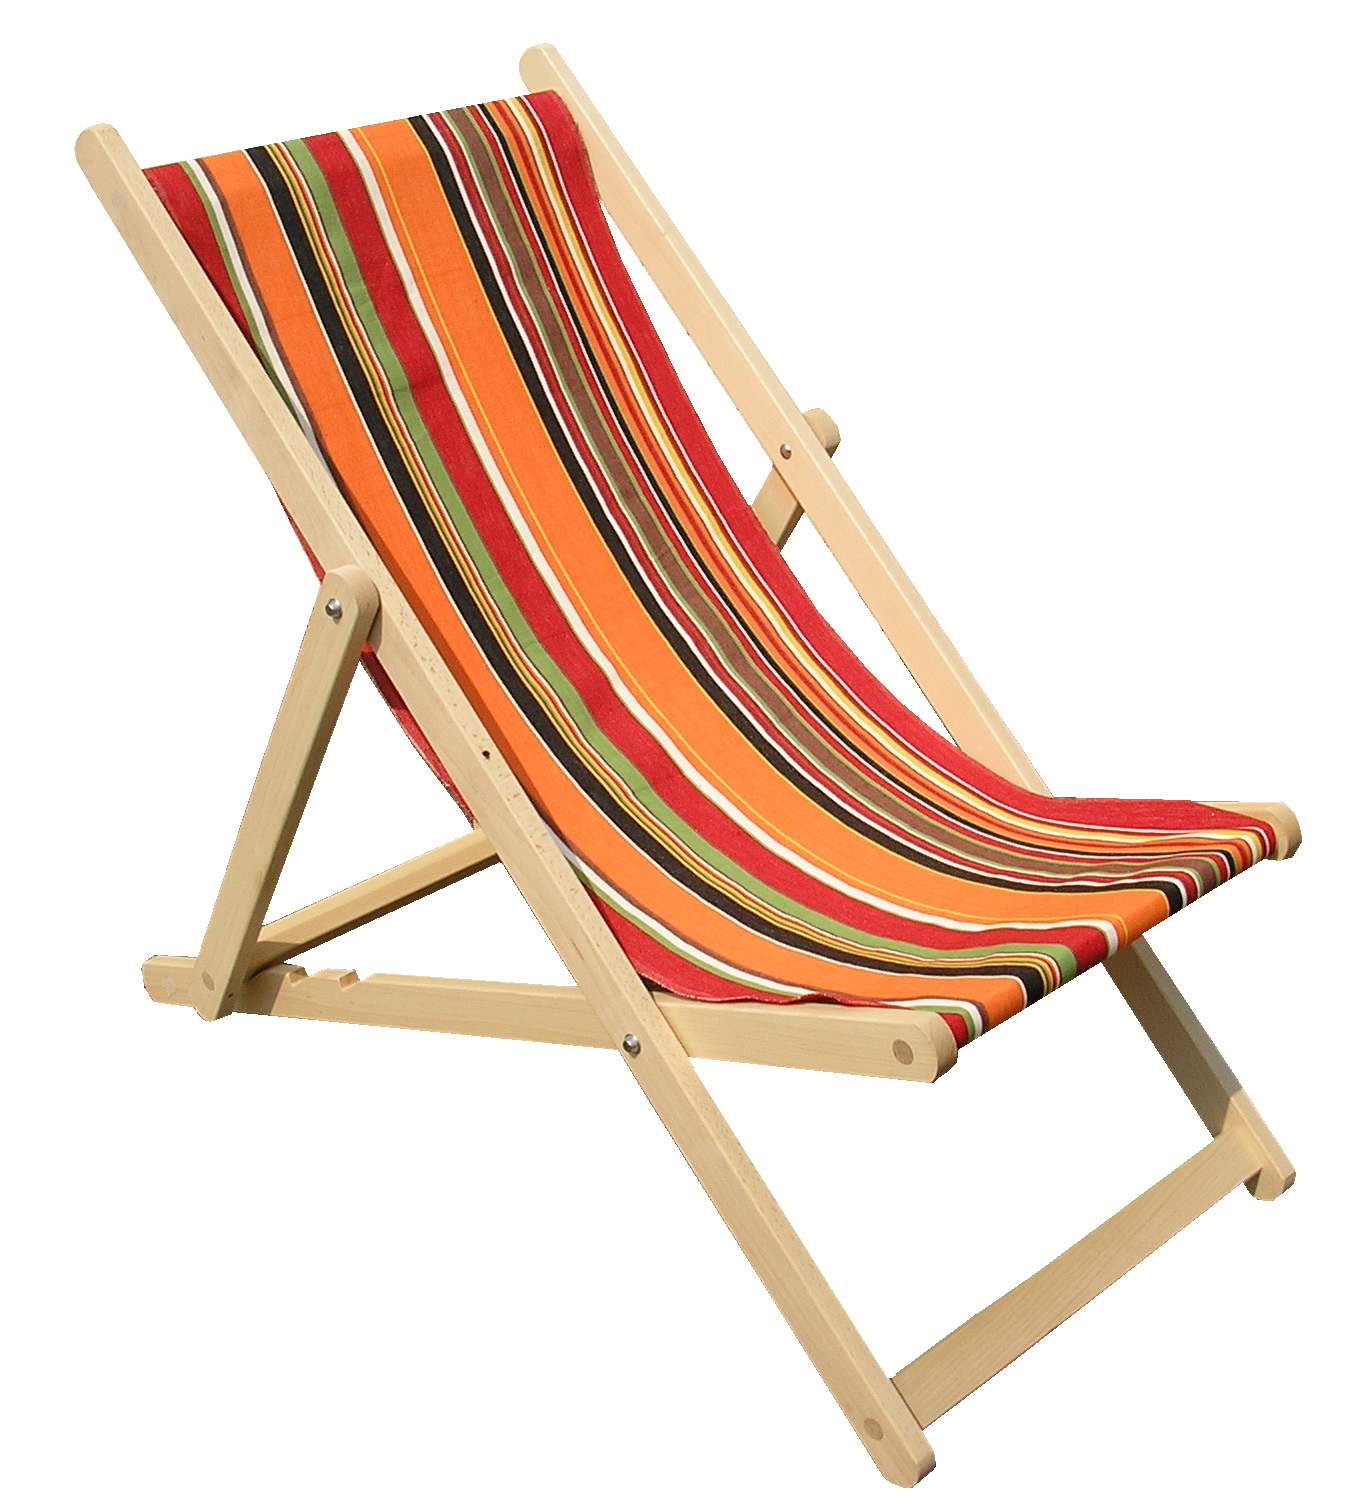 Orange Deckchairs : Wooden Folding Deck Chairs Skipping ...